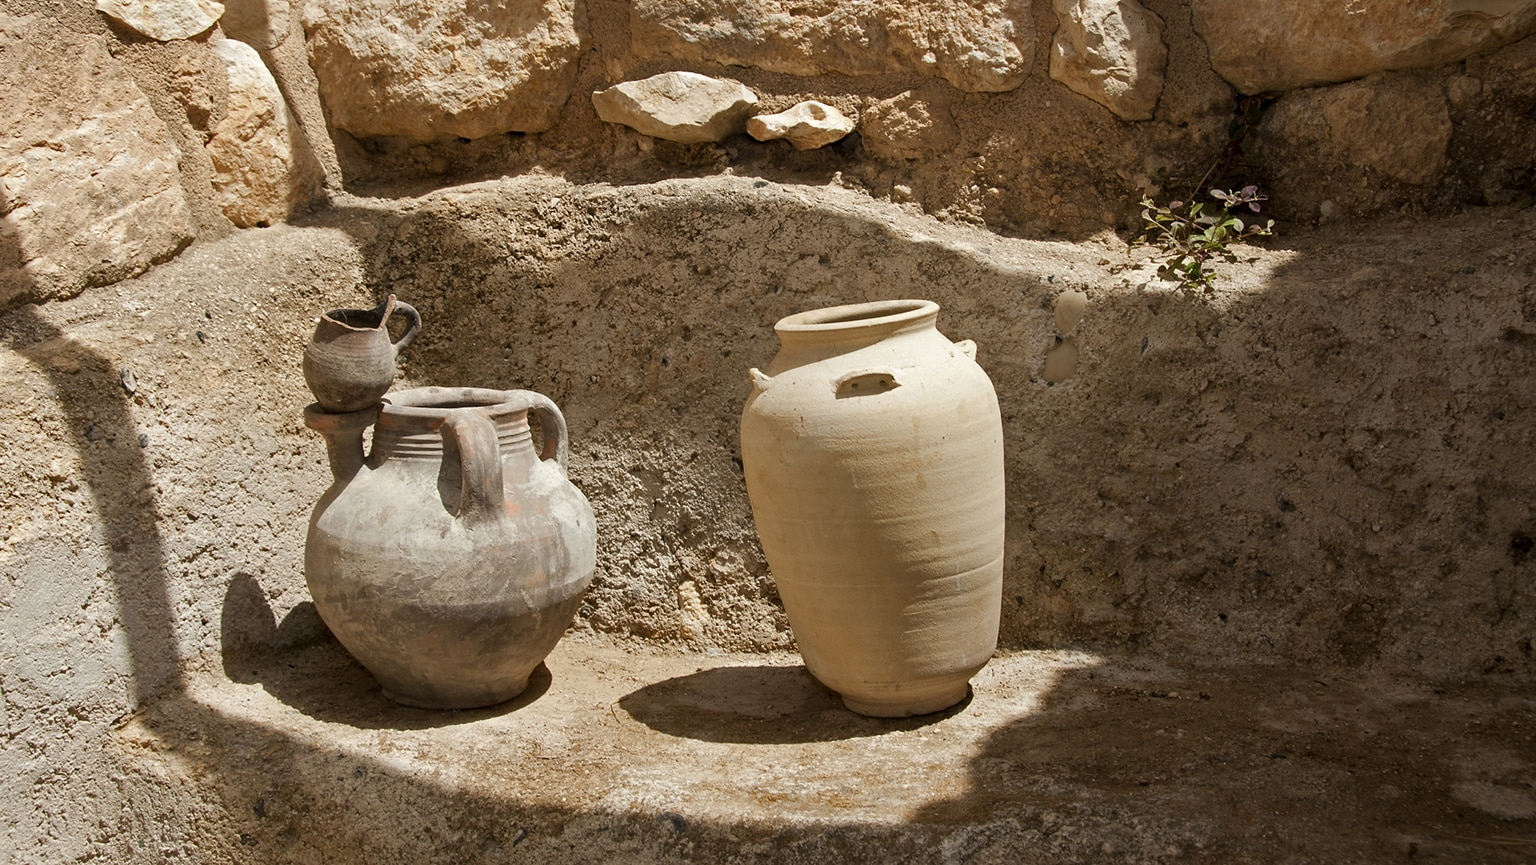 Daily Life at Qumran